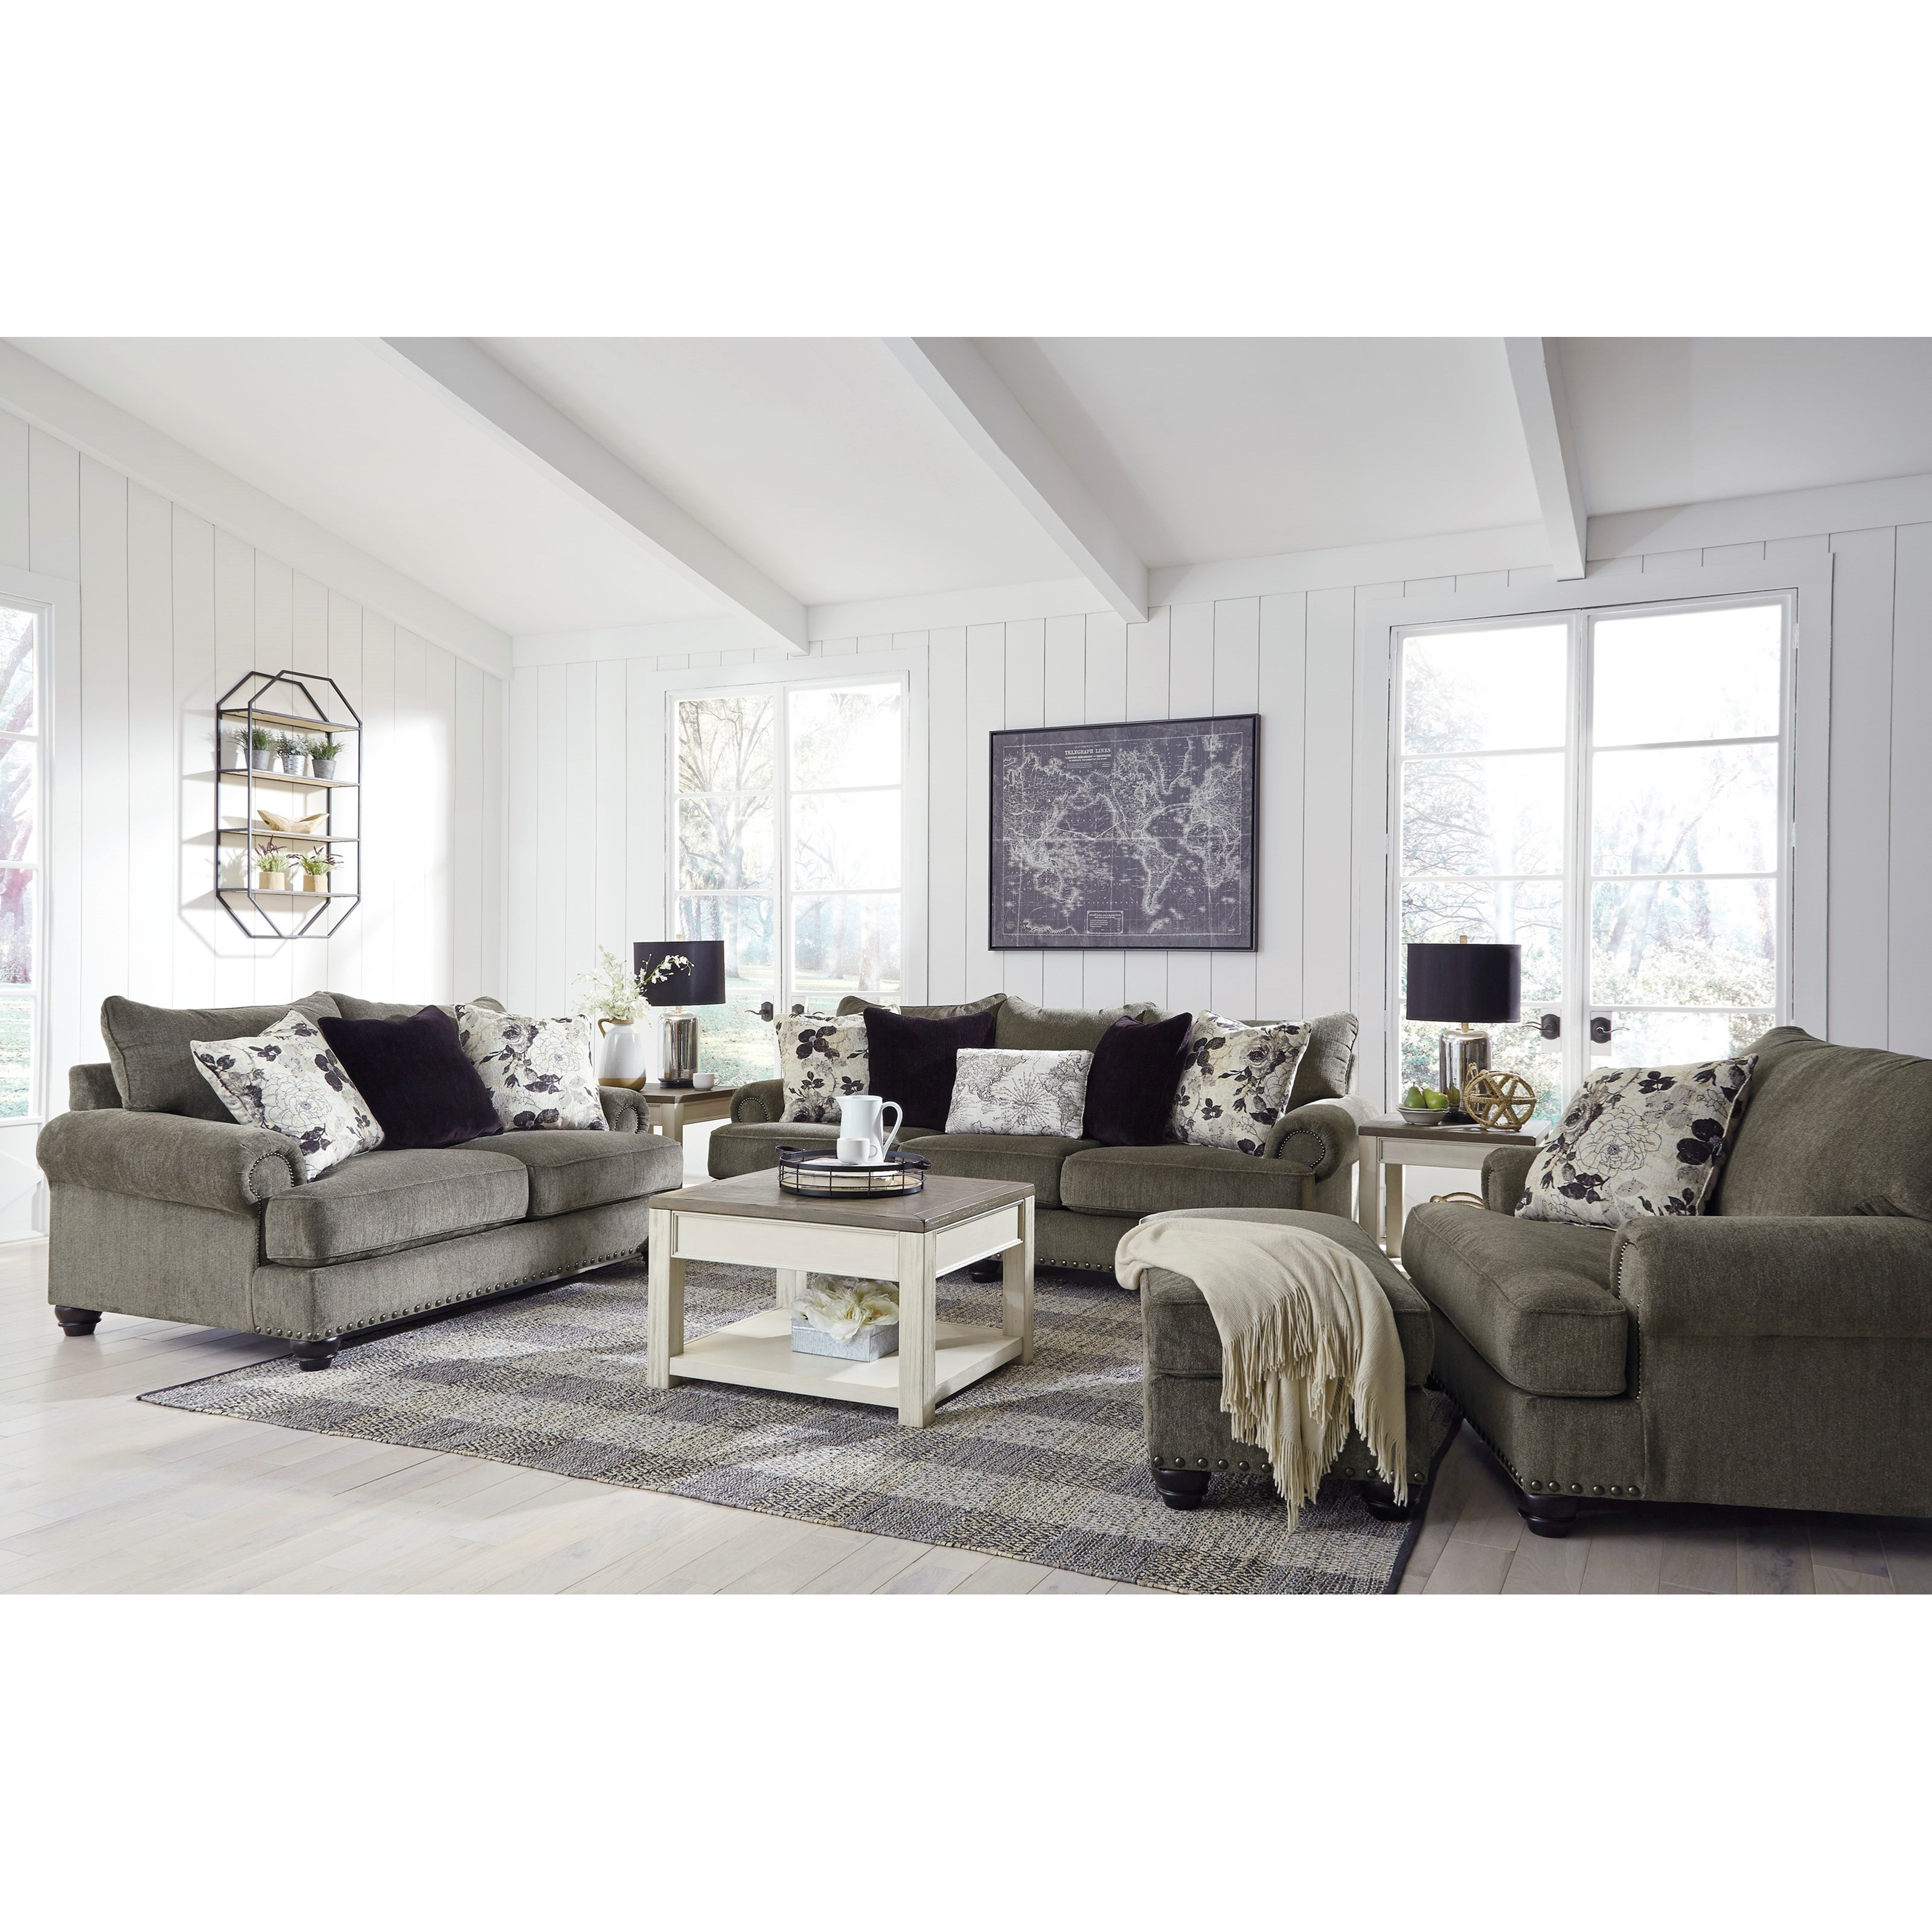 Sembler Living Room Group by Benchcraft at Rife's Home Furniture